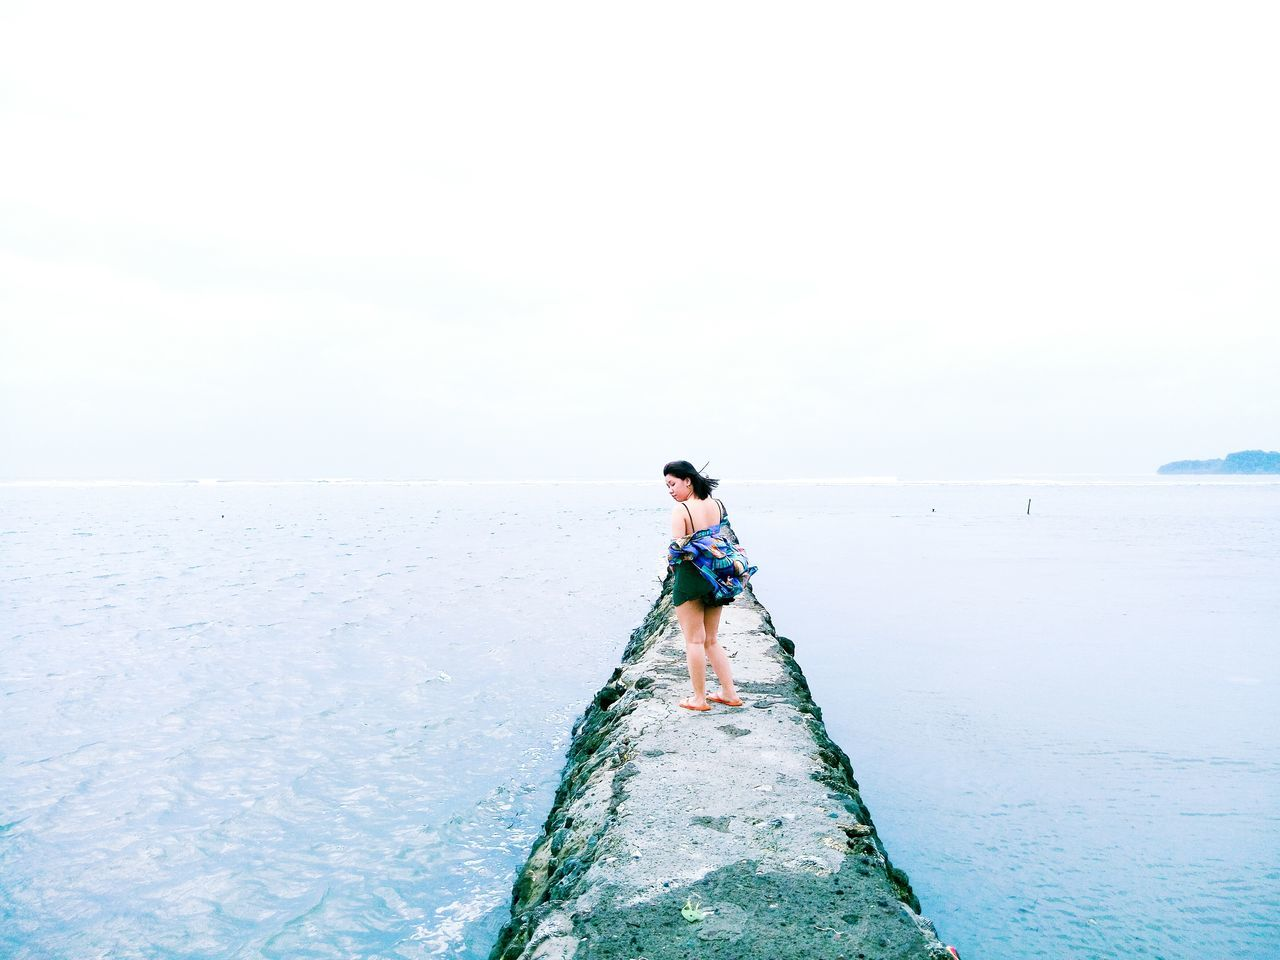 sea, real people, water, nature, one person, horizon over water, beauty in nature, full length, leisure activity, scenics, standing, outdoors, lifestyles, sky, day, rear view, ankle deep in water, clear sky, young adult, people